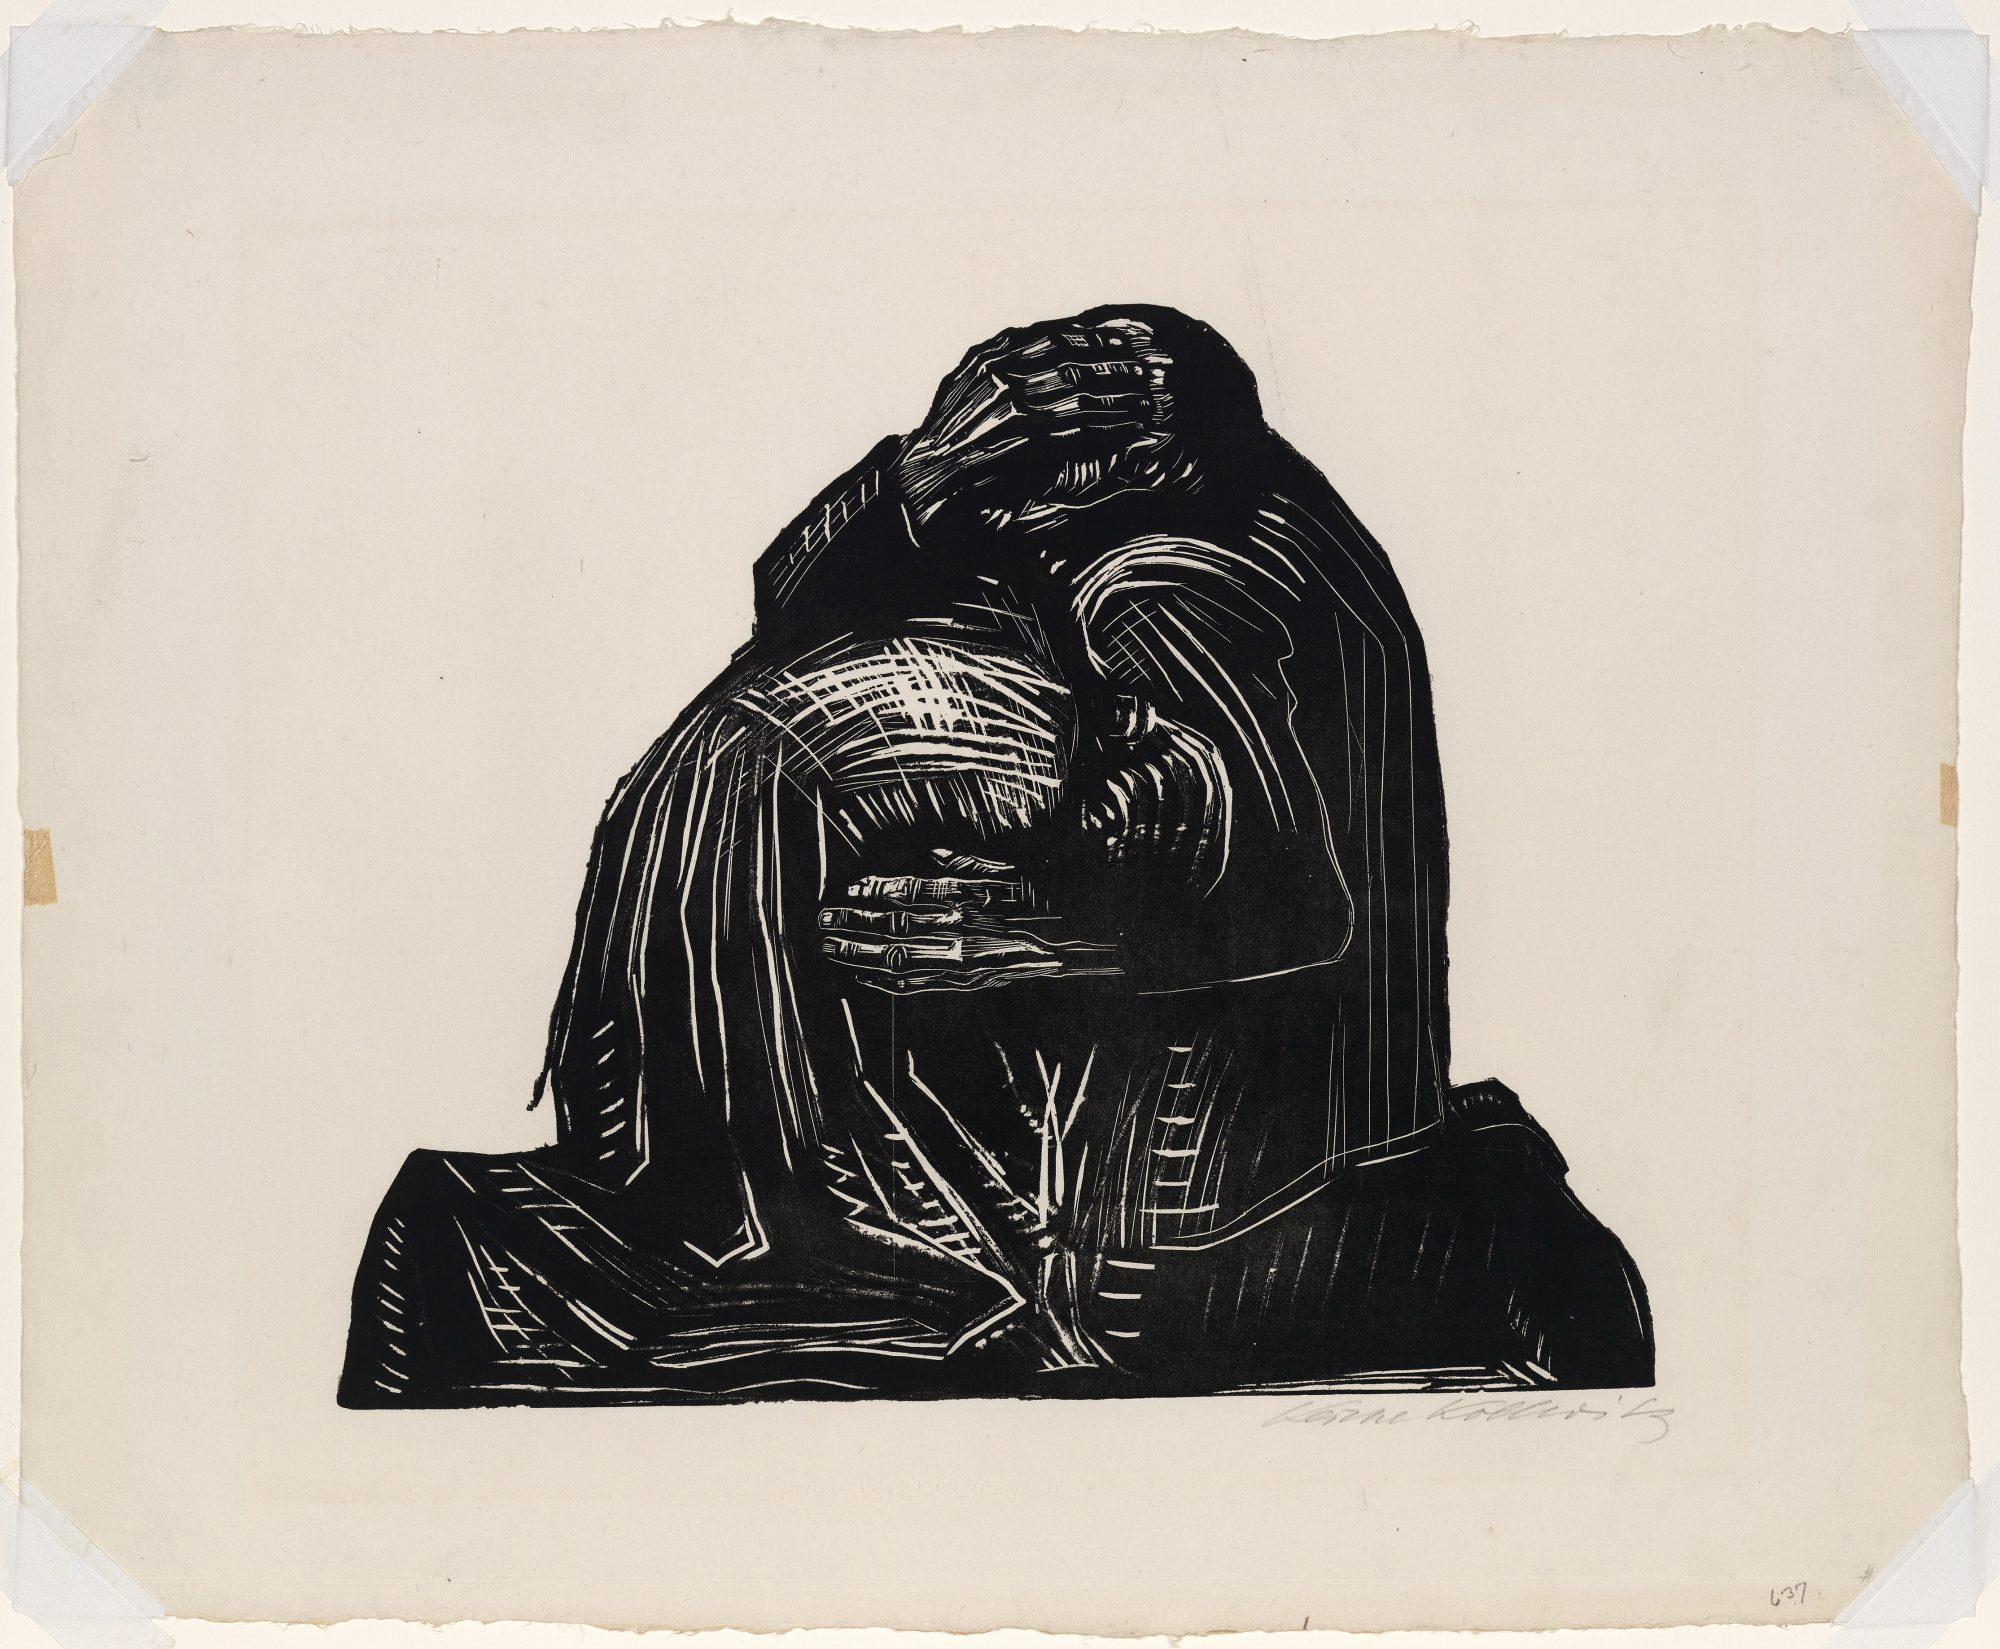 Käthe Kollwitz (German, 1867–1945) Die Eltern (The Parents) (plate 3 from the portfolio Krieg (War)). Woodcut on paper, 1921–22, published 1923, 25 3/16 x 31 5/16 in. Gift of Andrew S. Keck, Class of 1924, 38.15